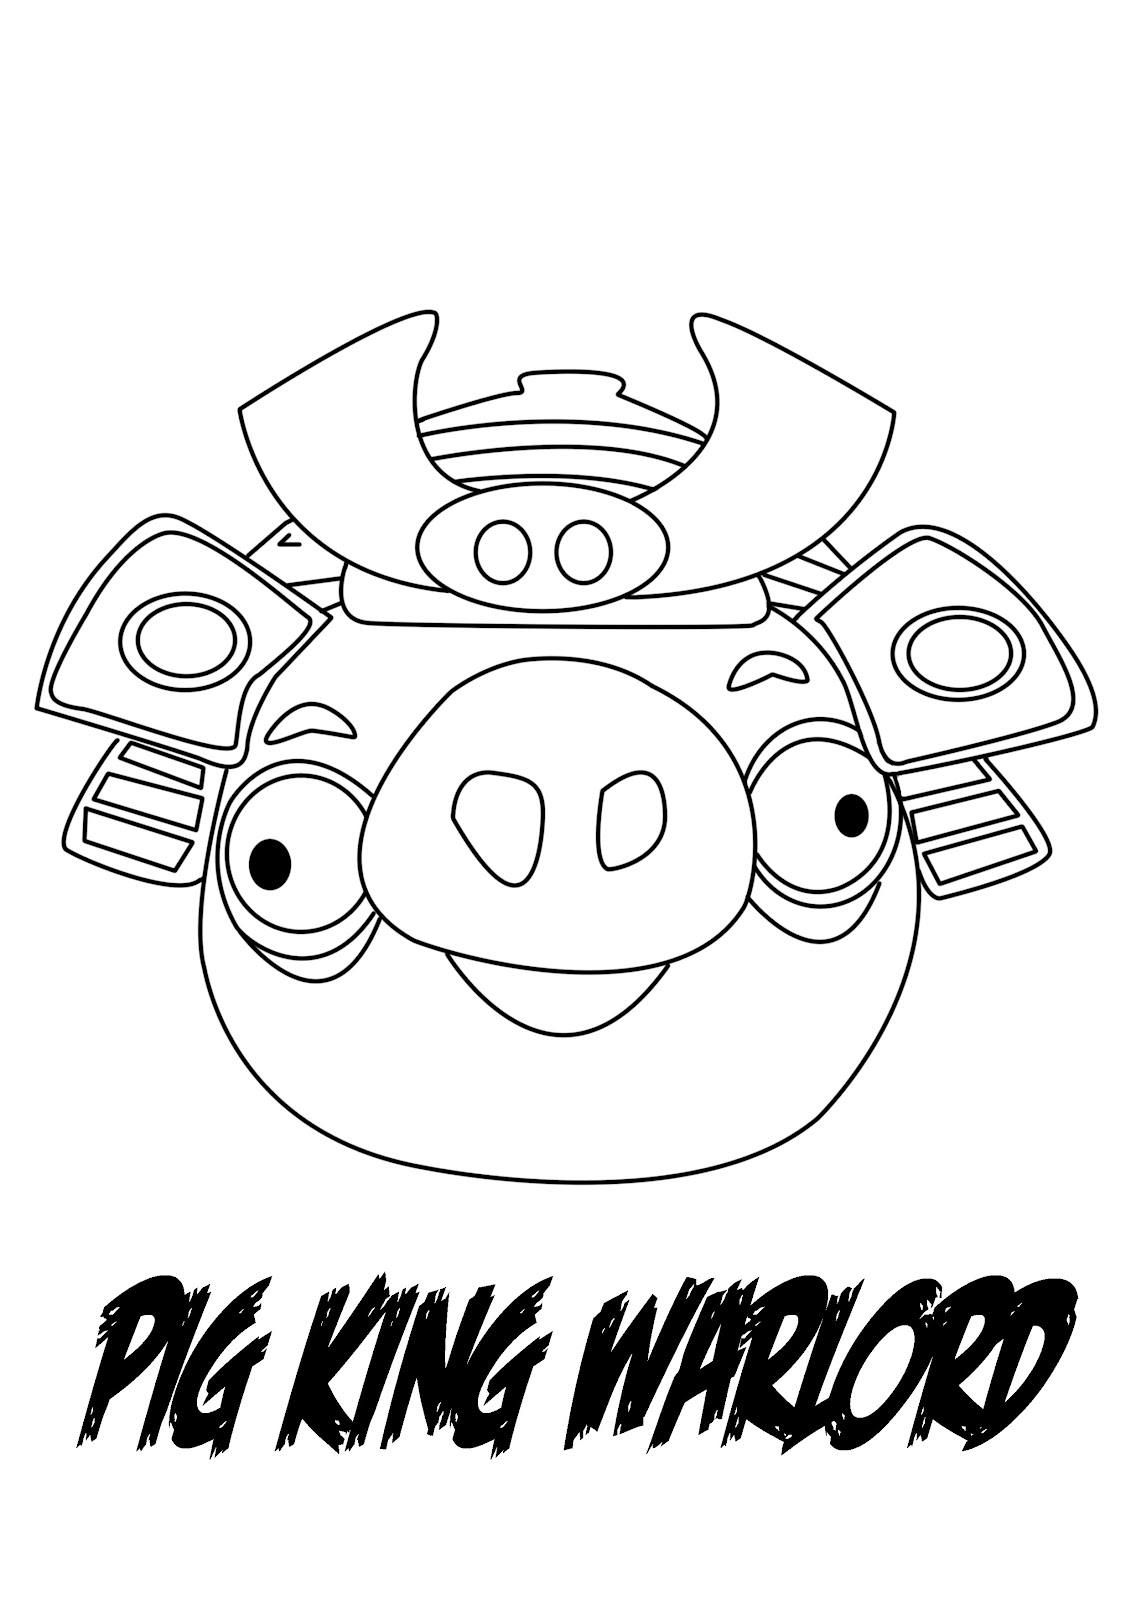 Angry Birds Bad Piggies Coloring Pages Dibujo para colorear de angryAngry Birds Bad Piggies Coloring Pages